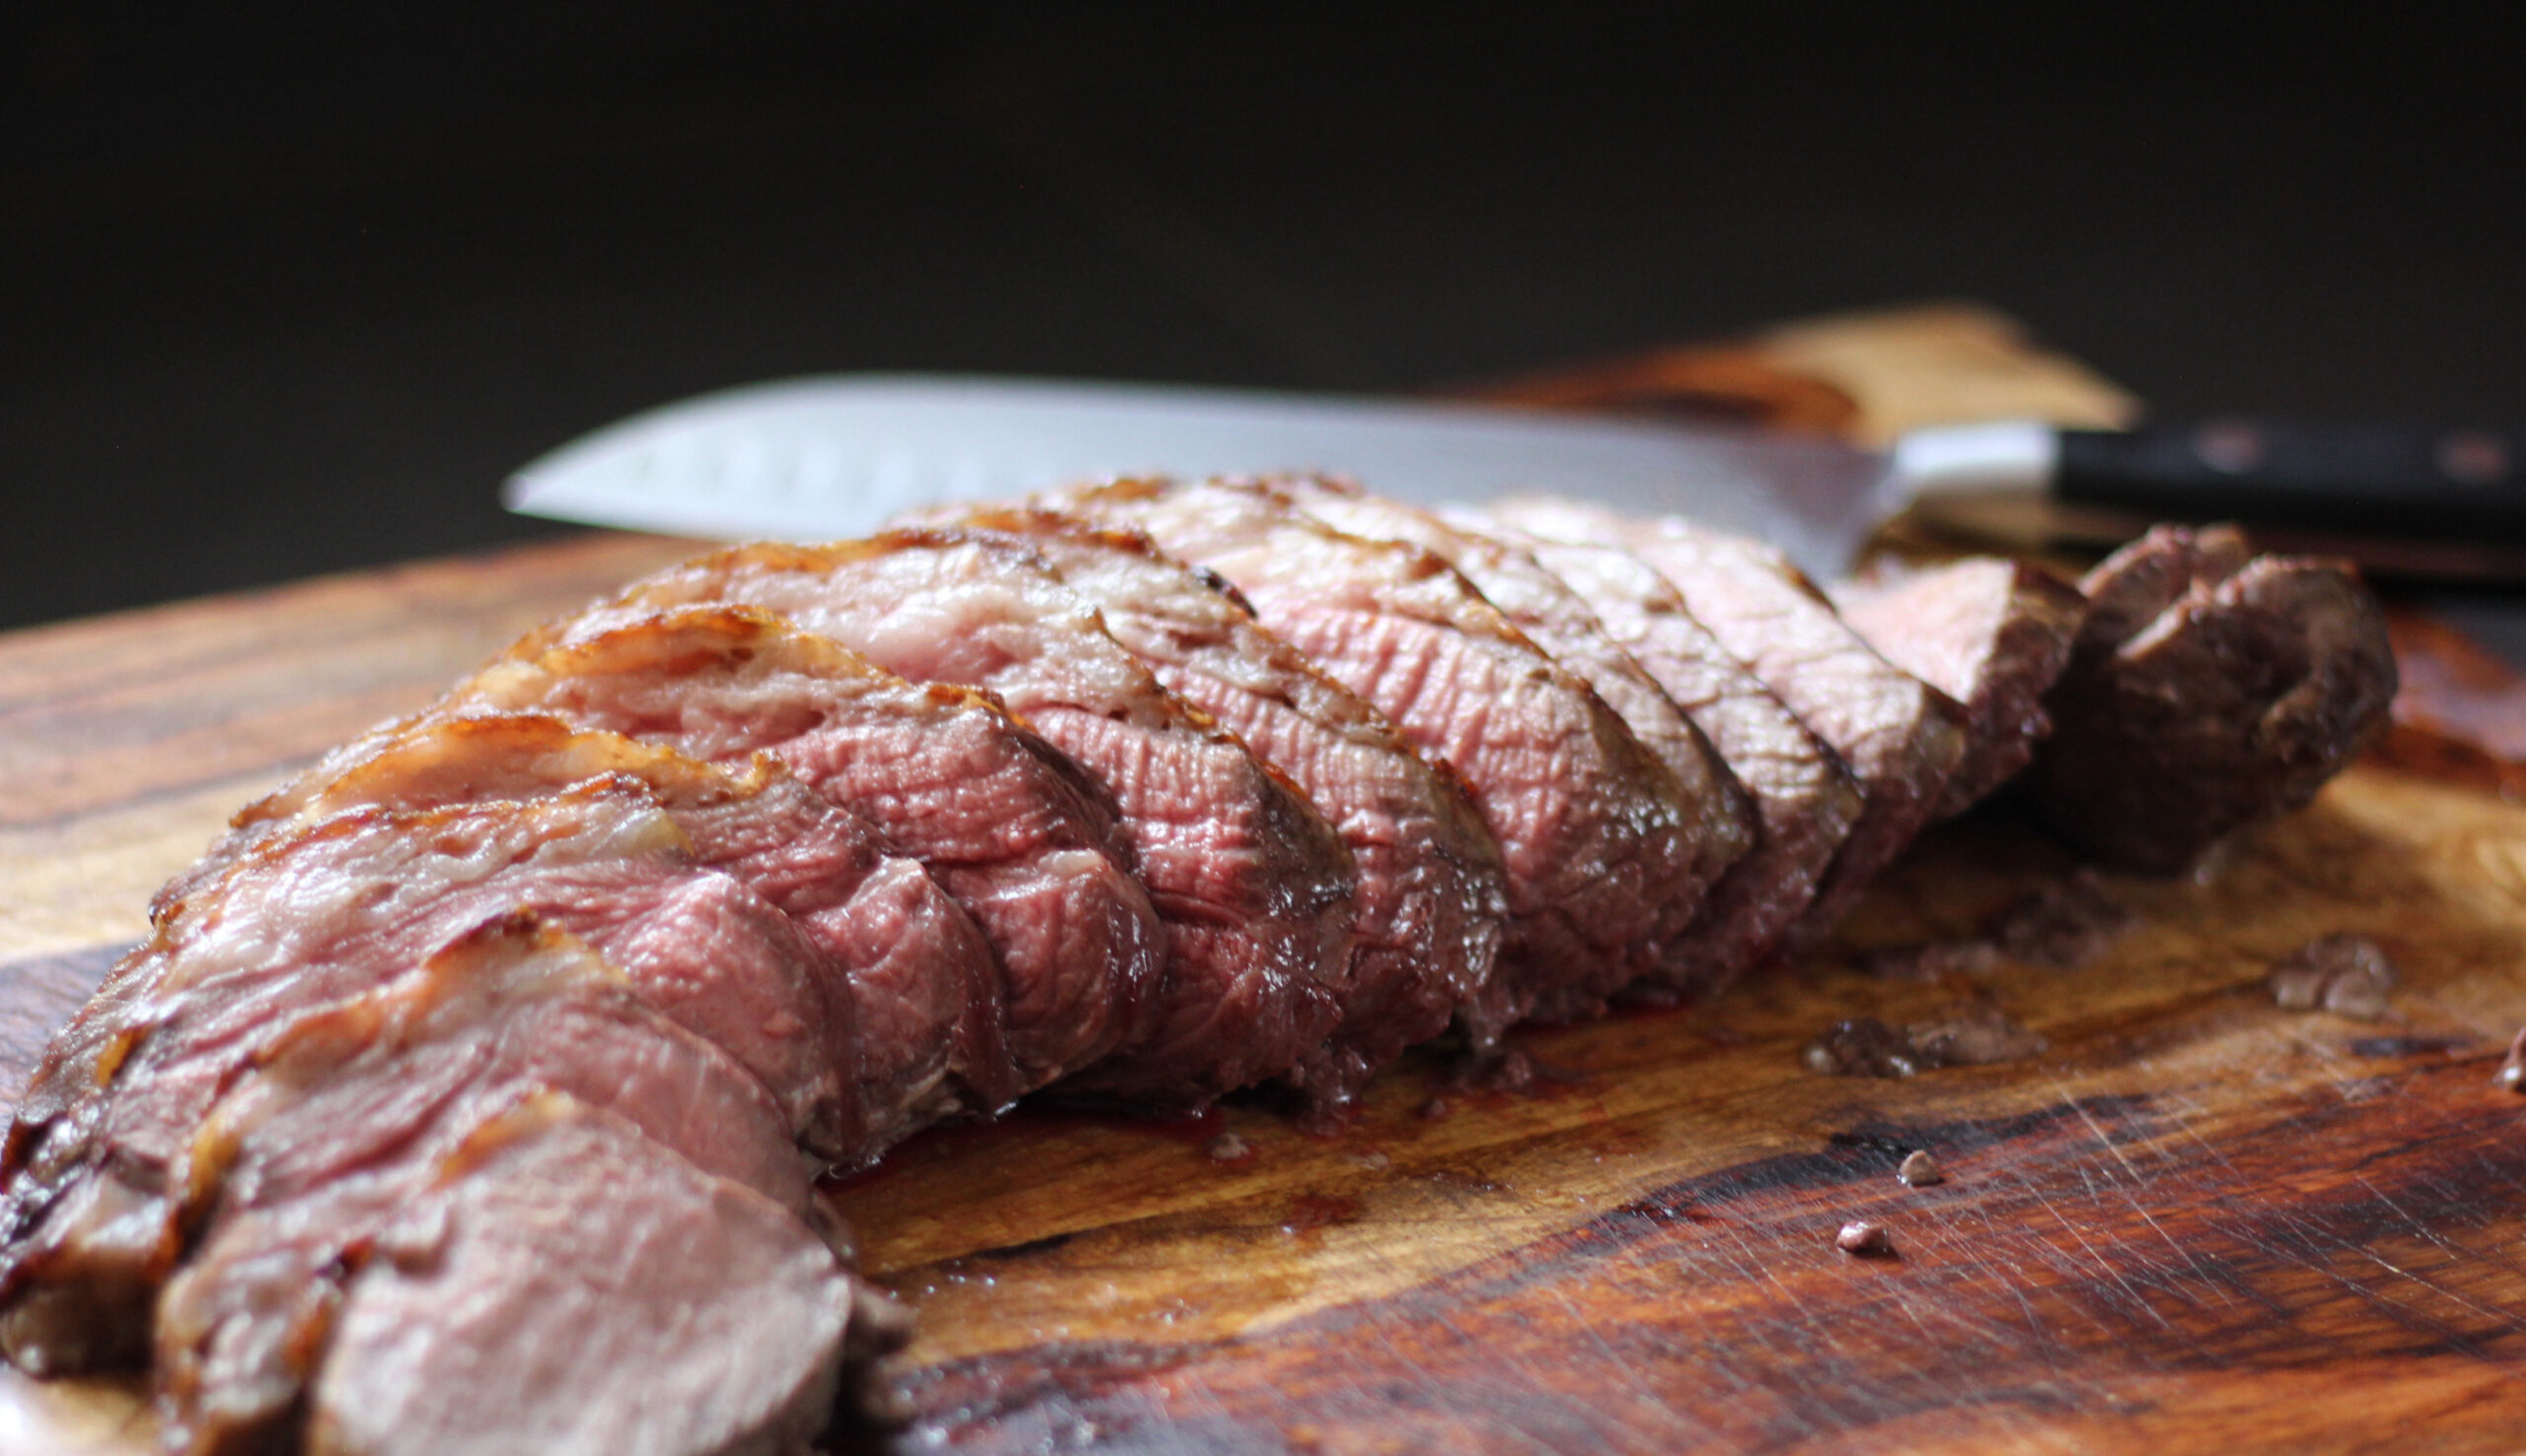 Oven-Baked Tritip (just beef and salt)